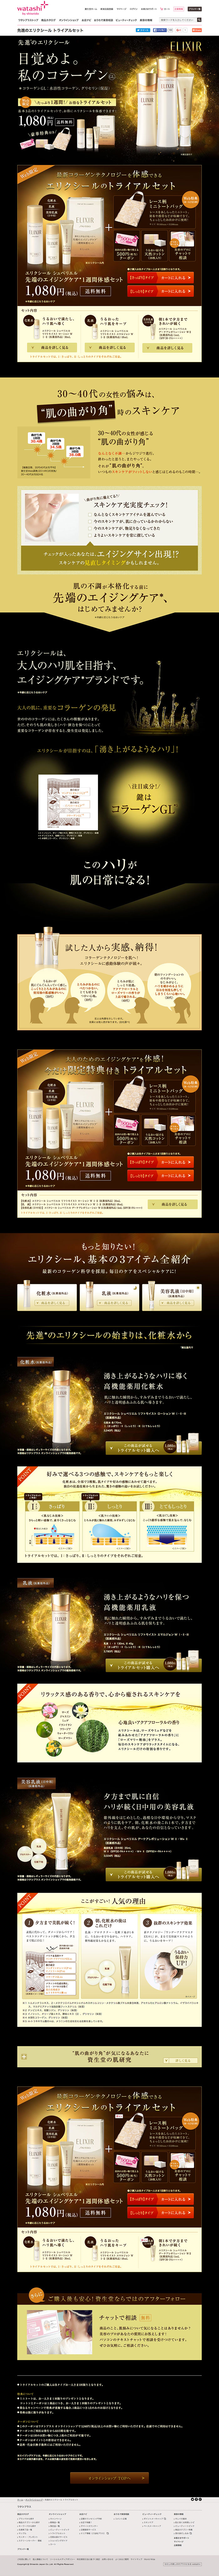 50-shiseido-co-jp-cms-onlineshop-campaign-i-trial-eis-1465657357216